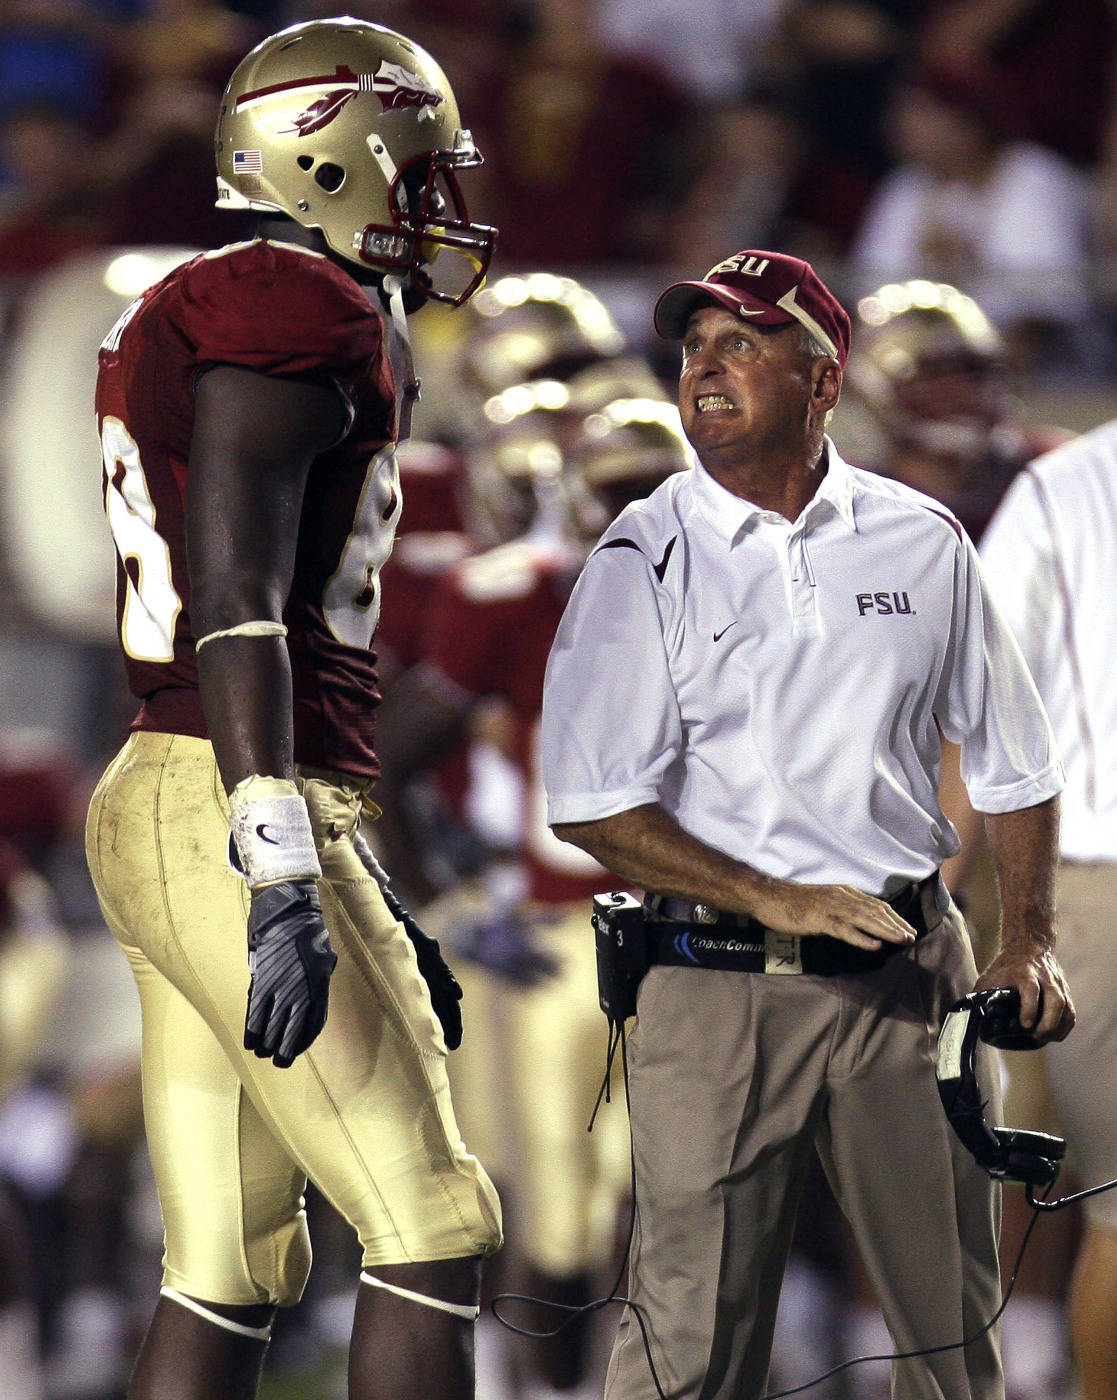 Florida State offensive line coach Rick Trickett, right, scolds Florida State tight end Beau Reliford for a holding penalty during an NCAA college football game against Georgia Tech, Saturday, Oct. 10, 2009, in Tallahassee, Fla.